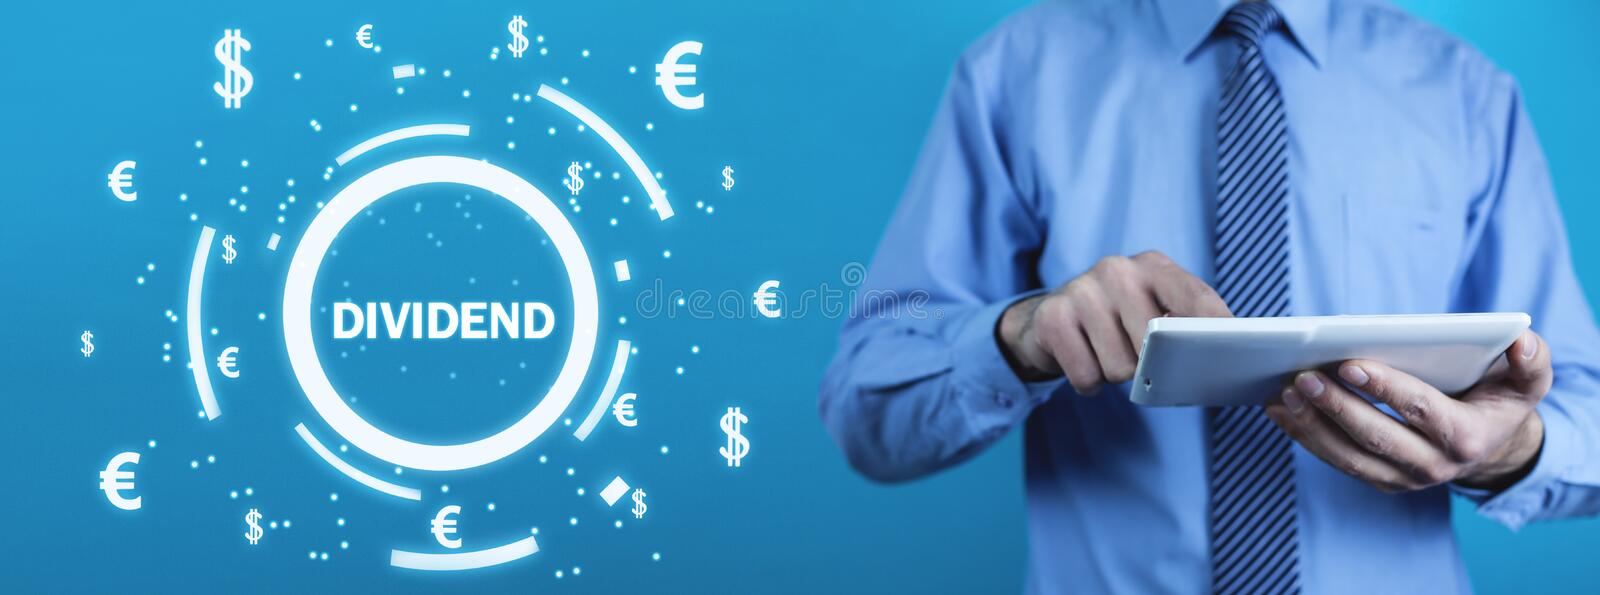 Man holding Dividend text with currency symbols. Business stock image